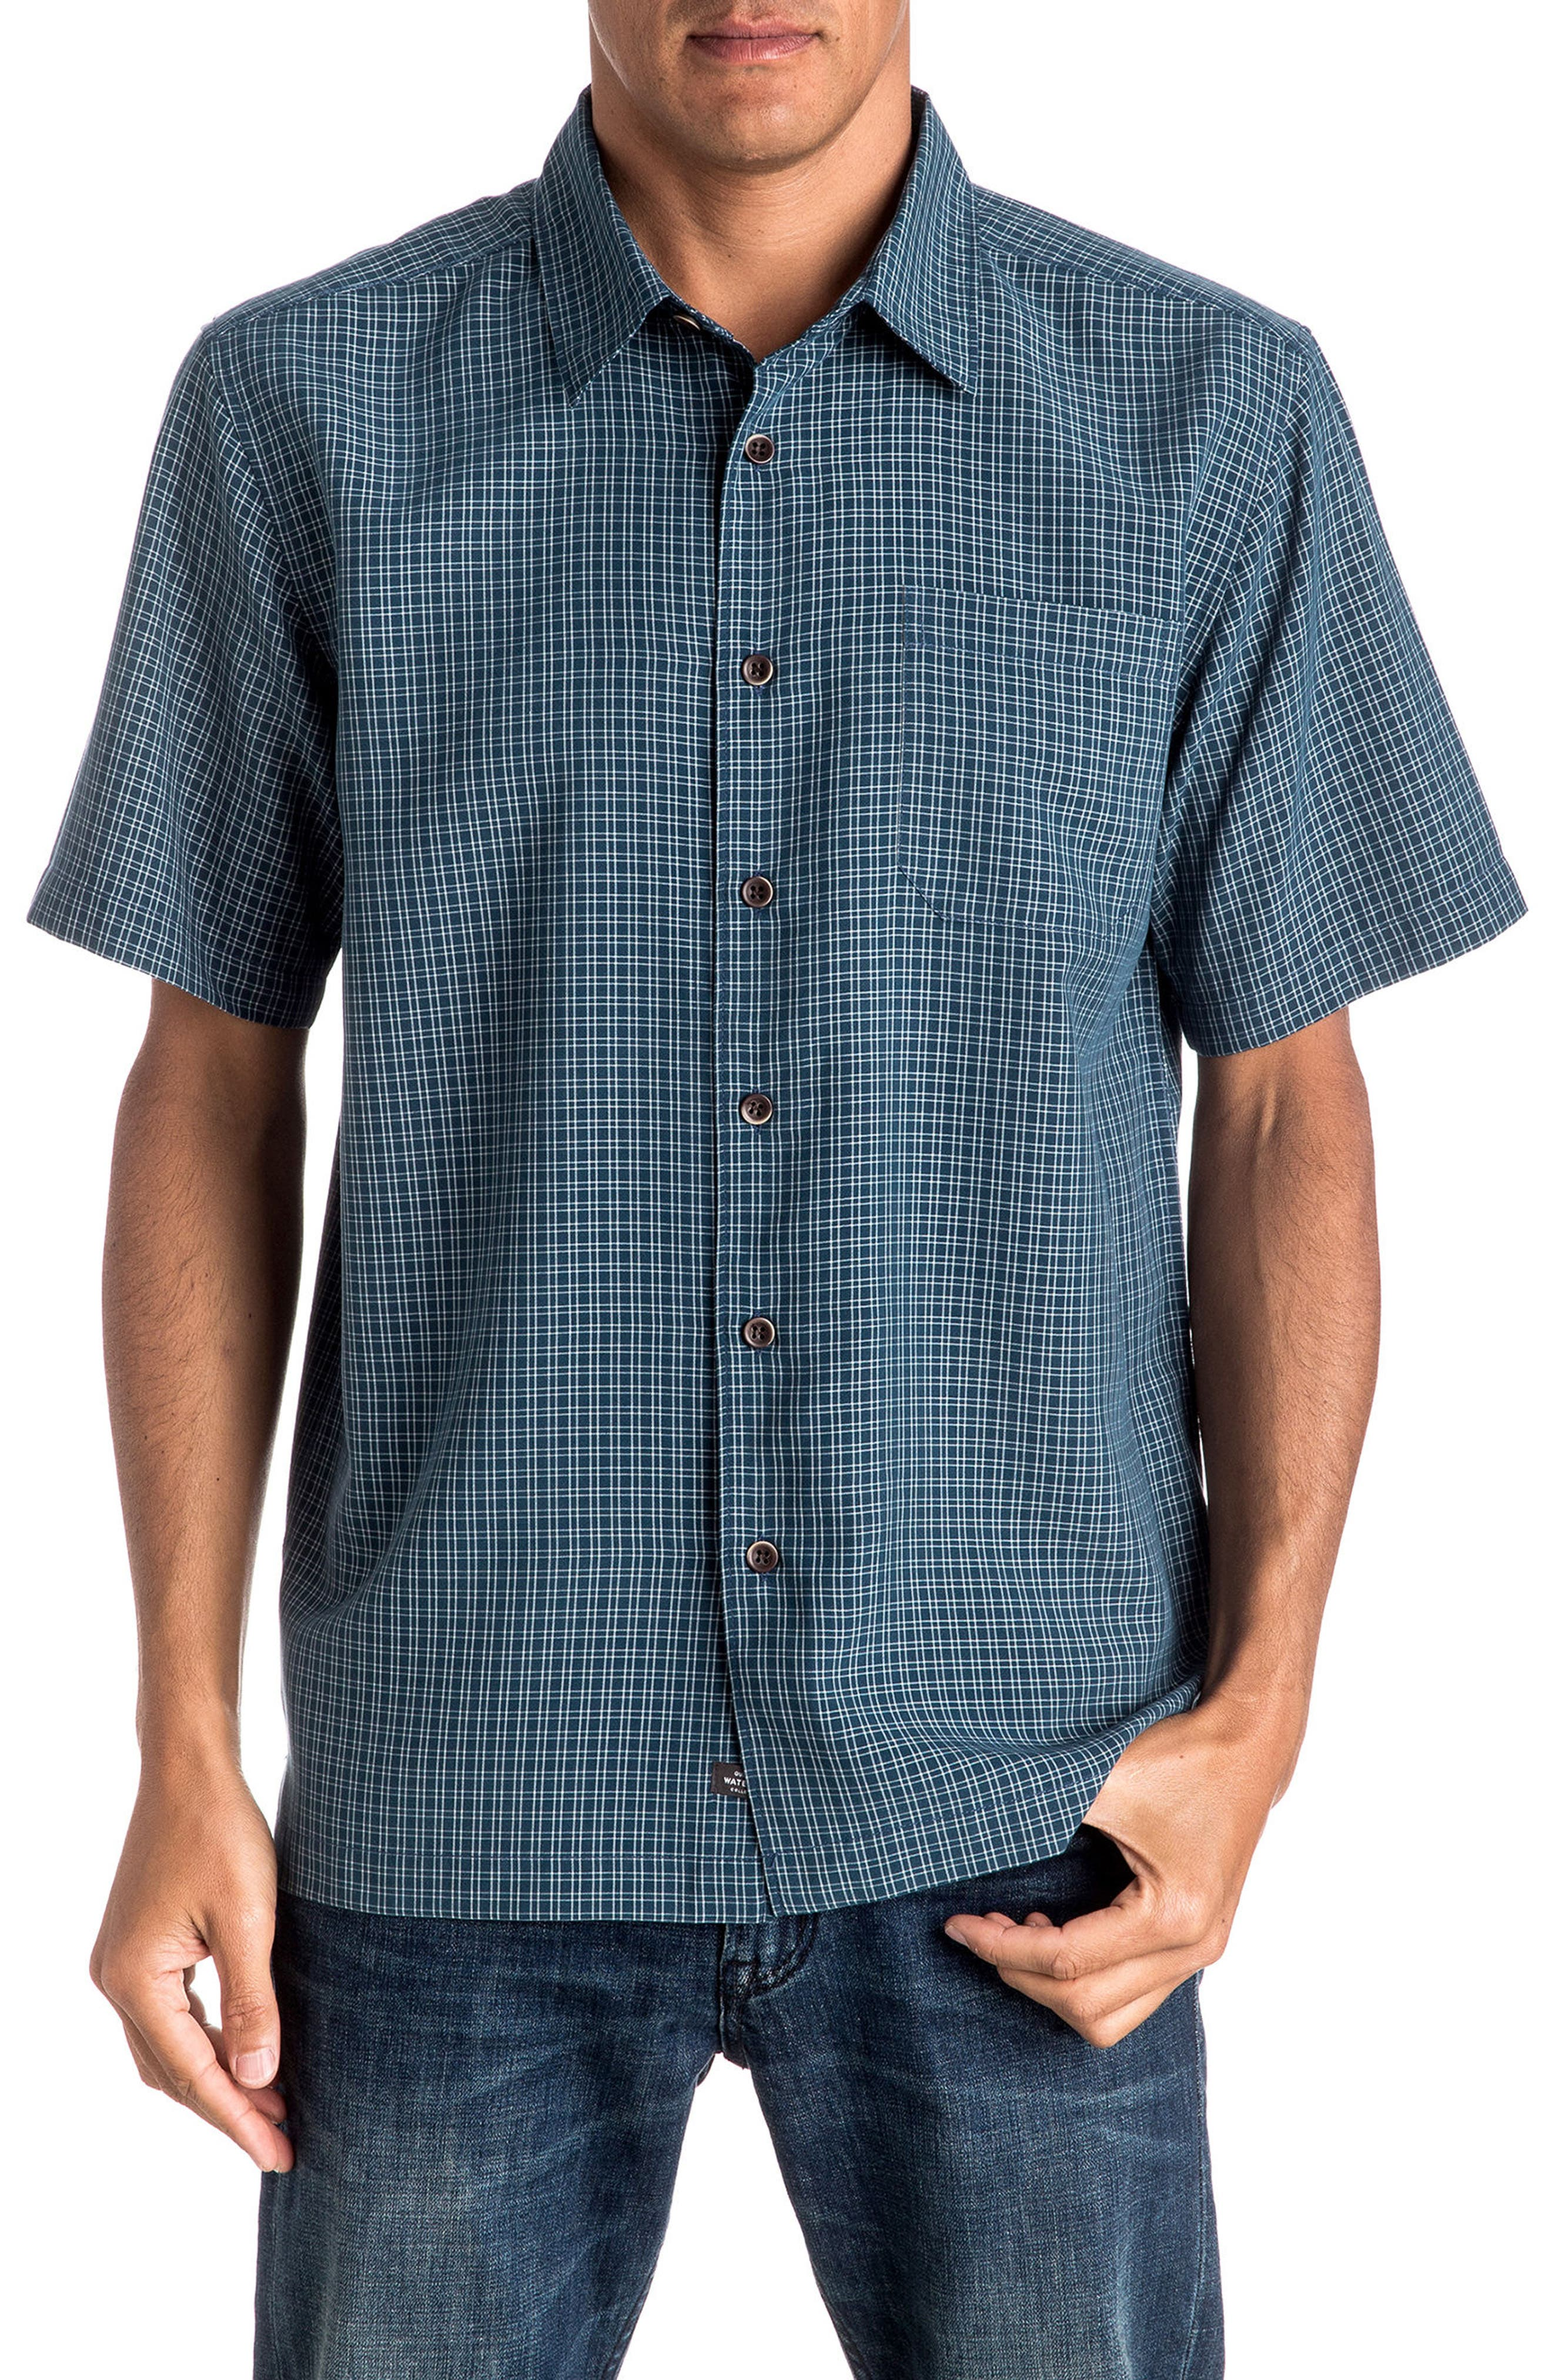 Quiksilver Waterman Collection 'Buoy' Regular Fit Check Sport Shirt